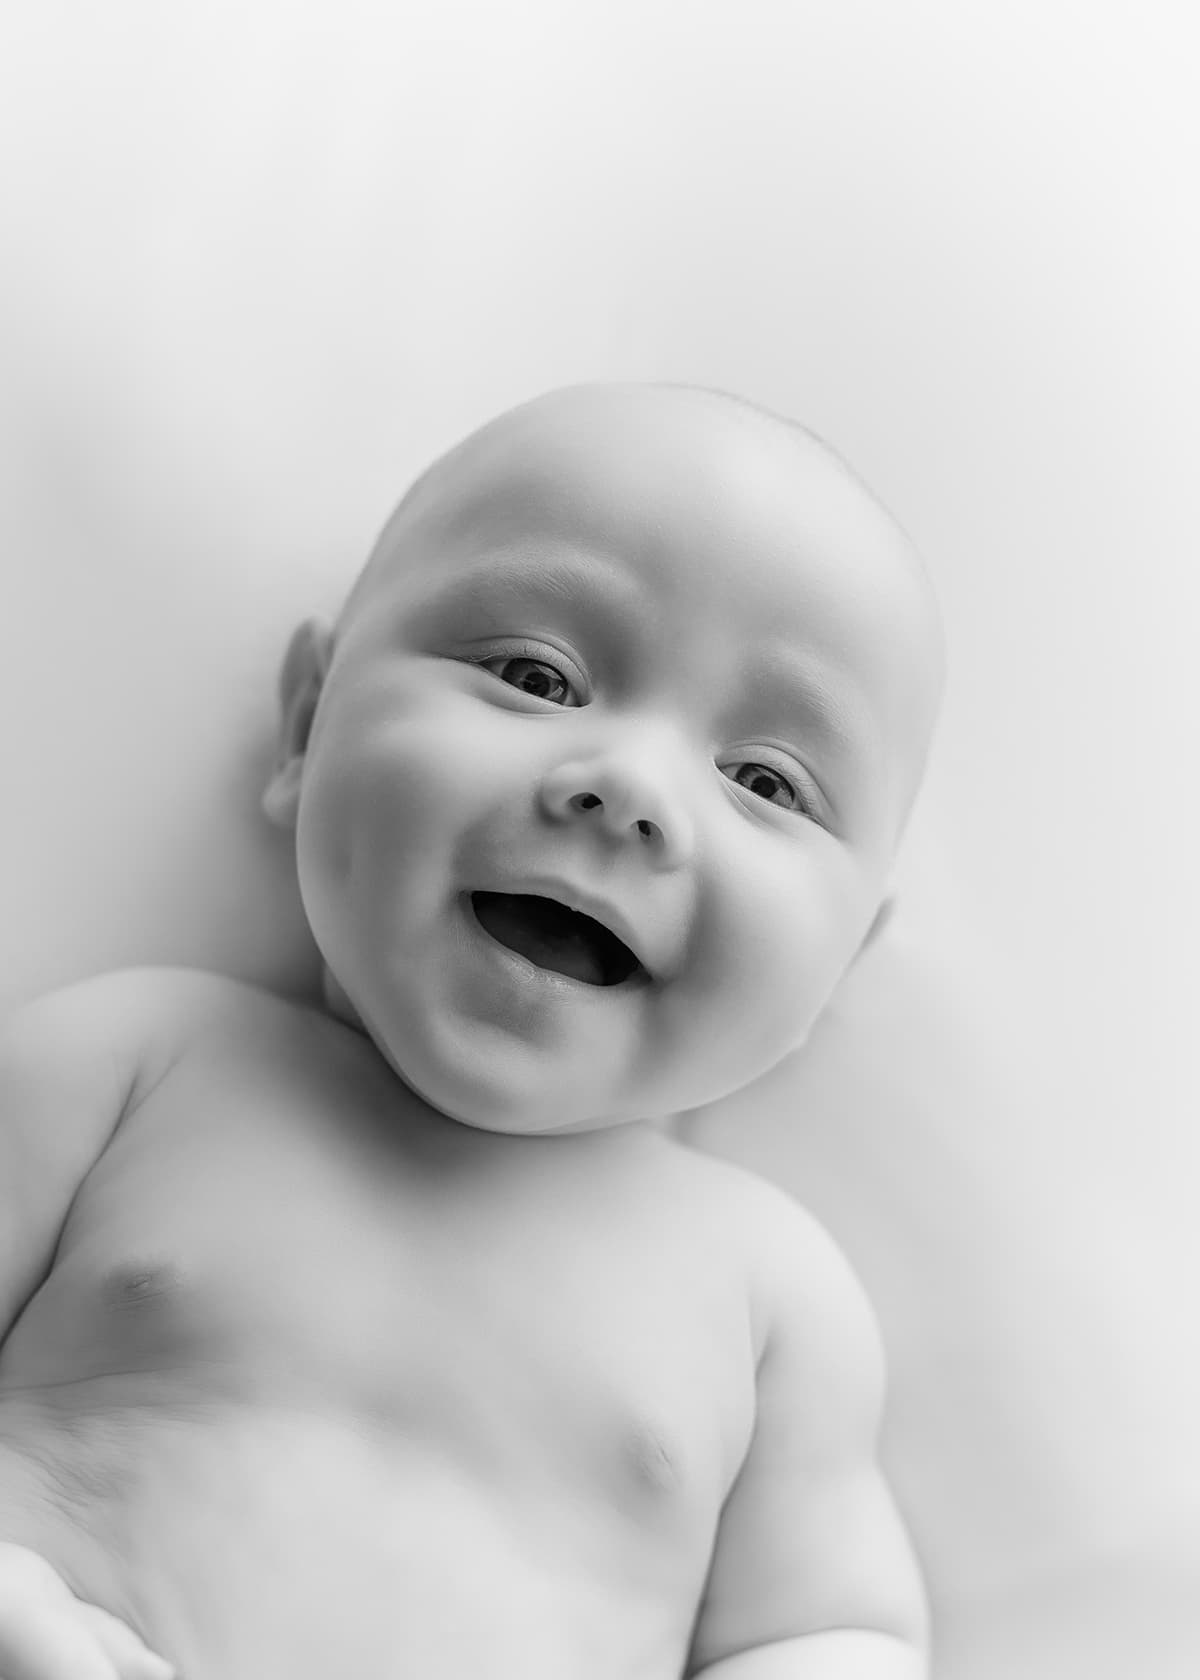 Newborn Baby boy smiling and laughing at camera in black and white photo - Newborn Photographer - Perfect Story Photography